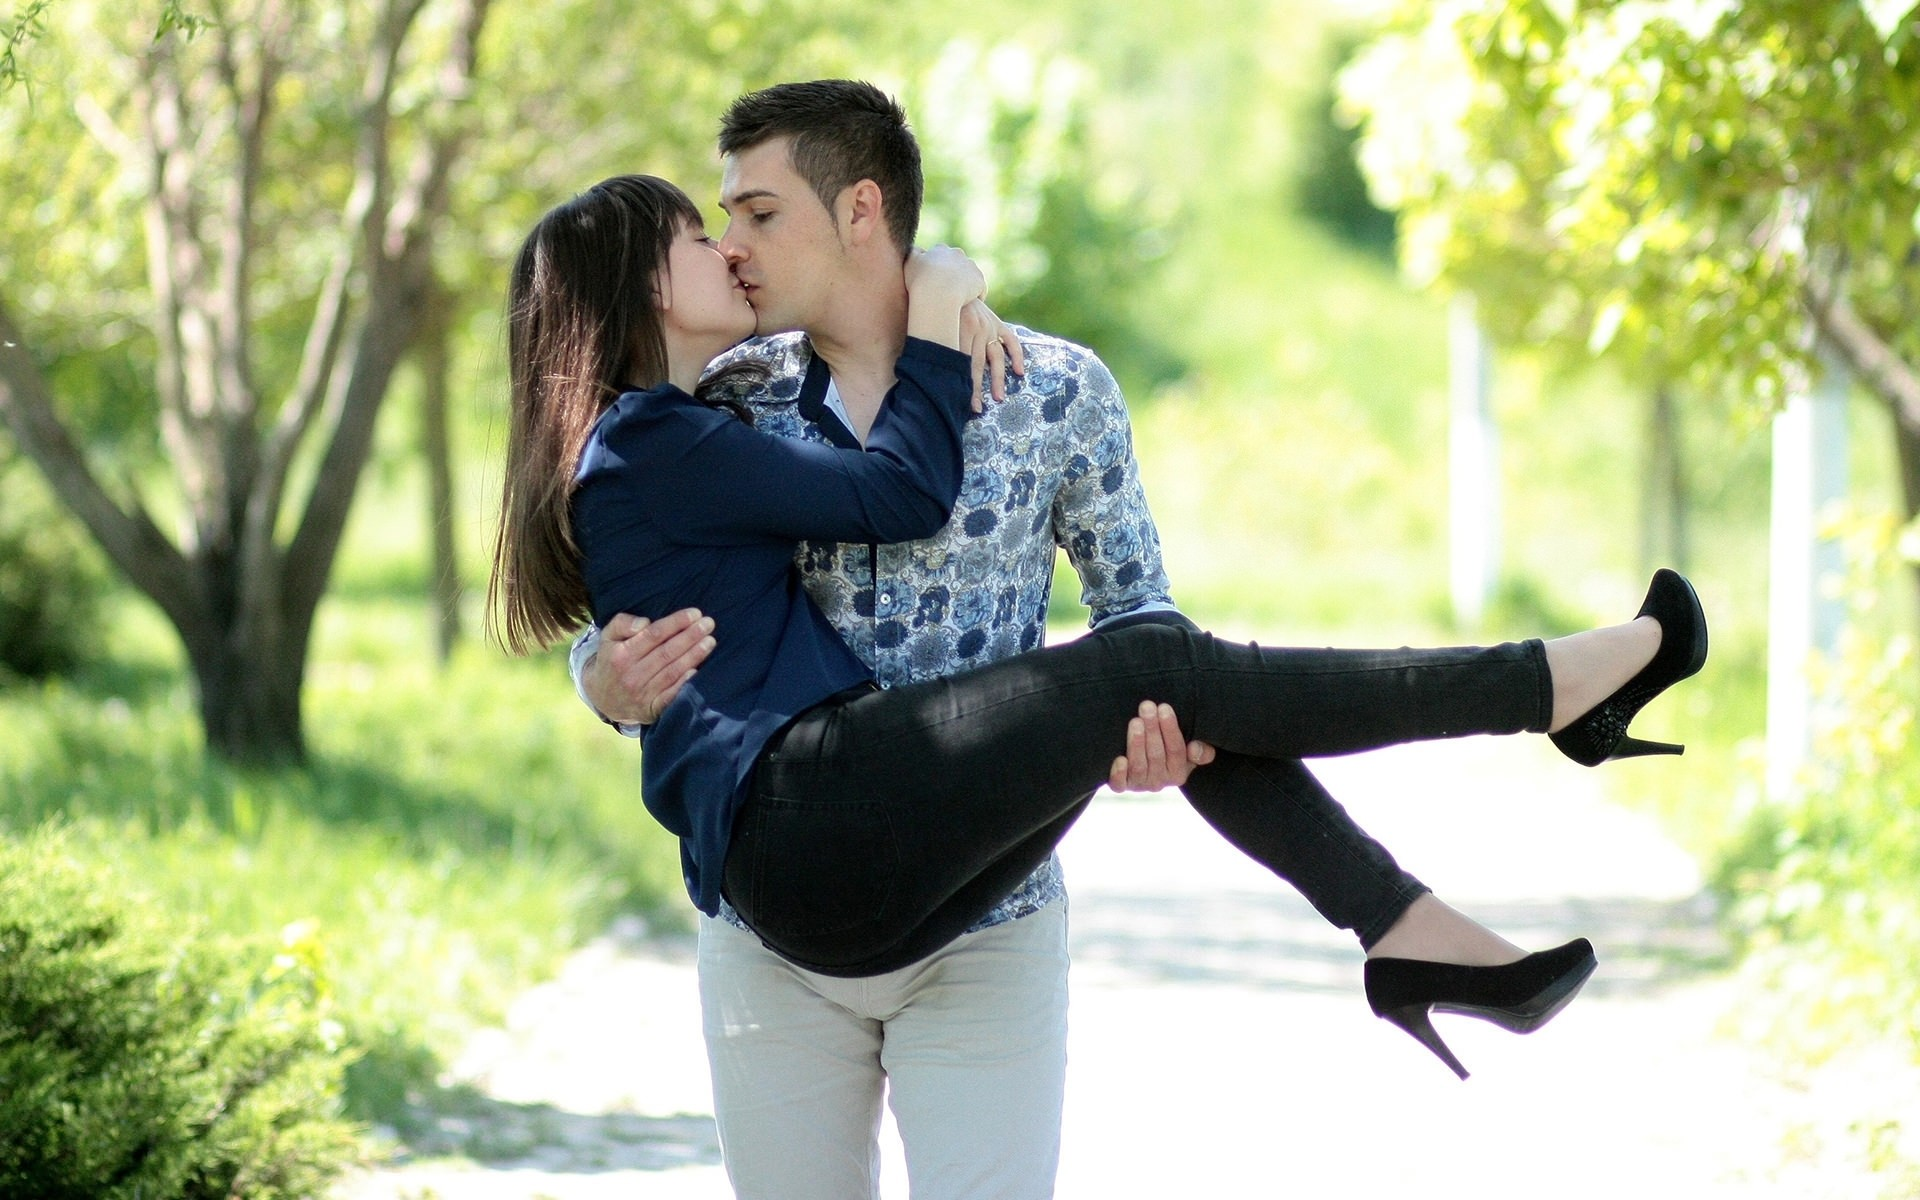 2017 New Love Romantic Couple Hd Photo Romantic Love Couple Wallpapers, Pk465 100% Quality Hd Romantic